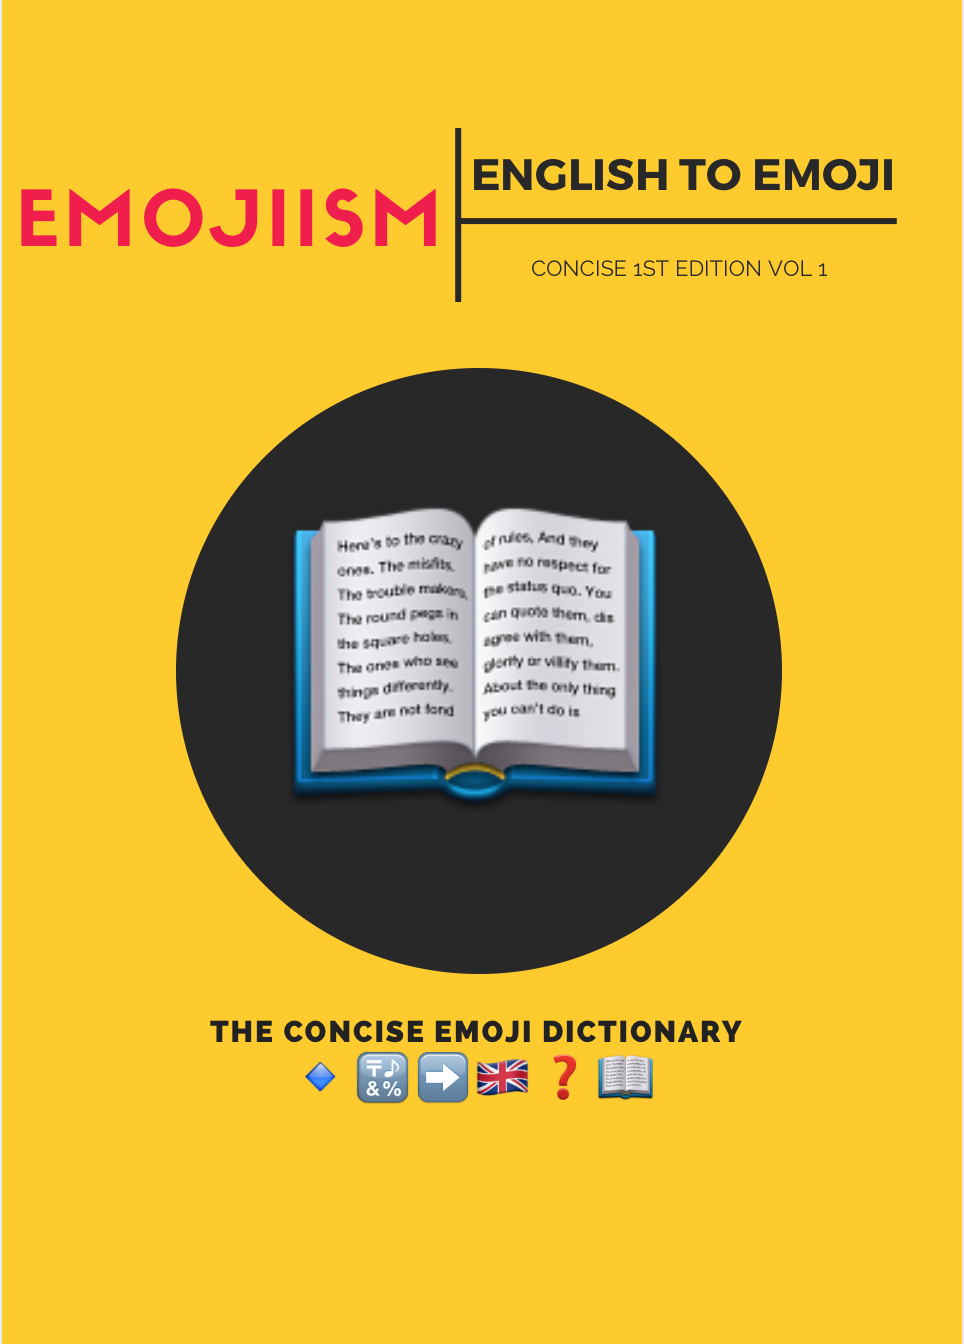 The English to Emoji dictionary, for English speakers to translate Emojists, as they speak completely in emojis *Graphic: Alaina Watson